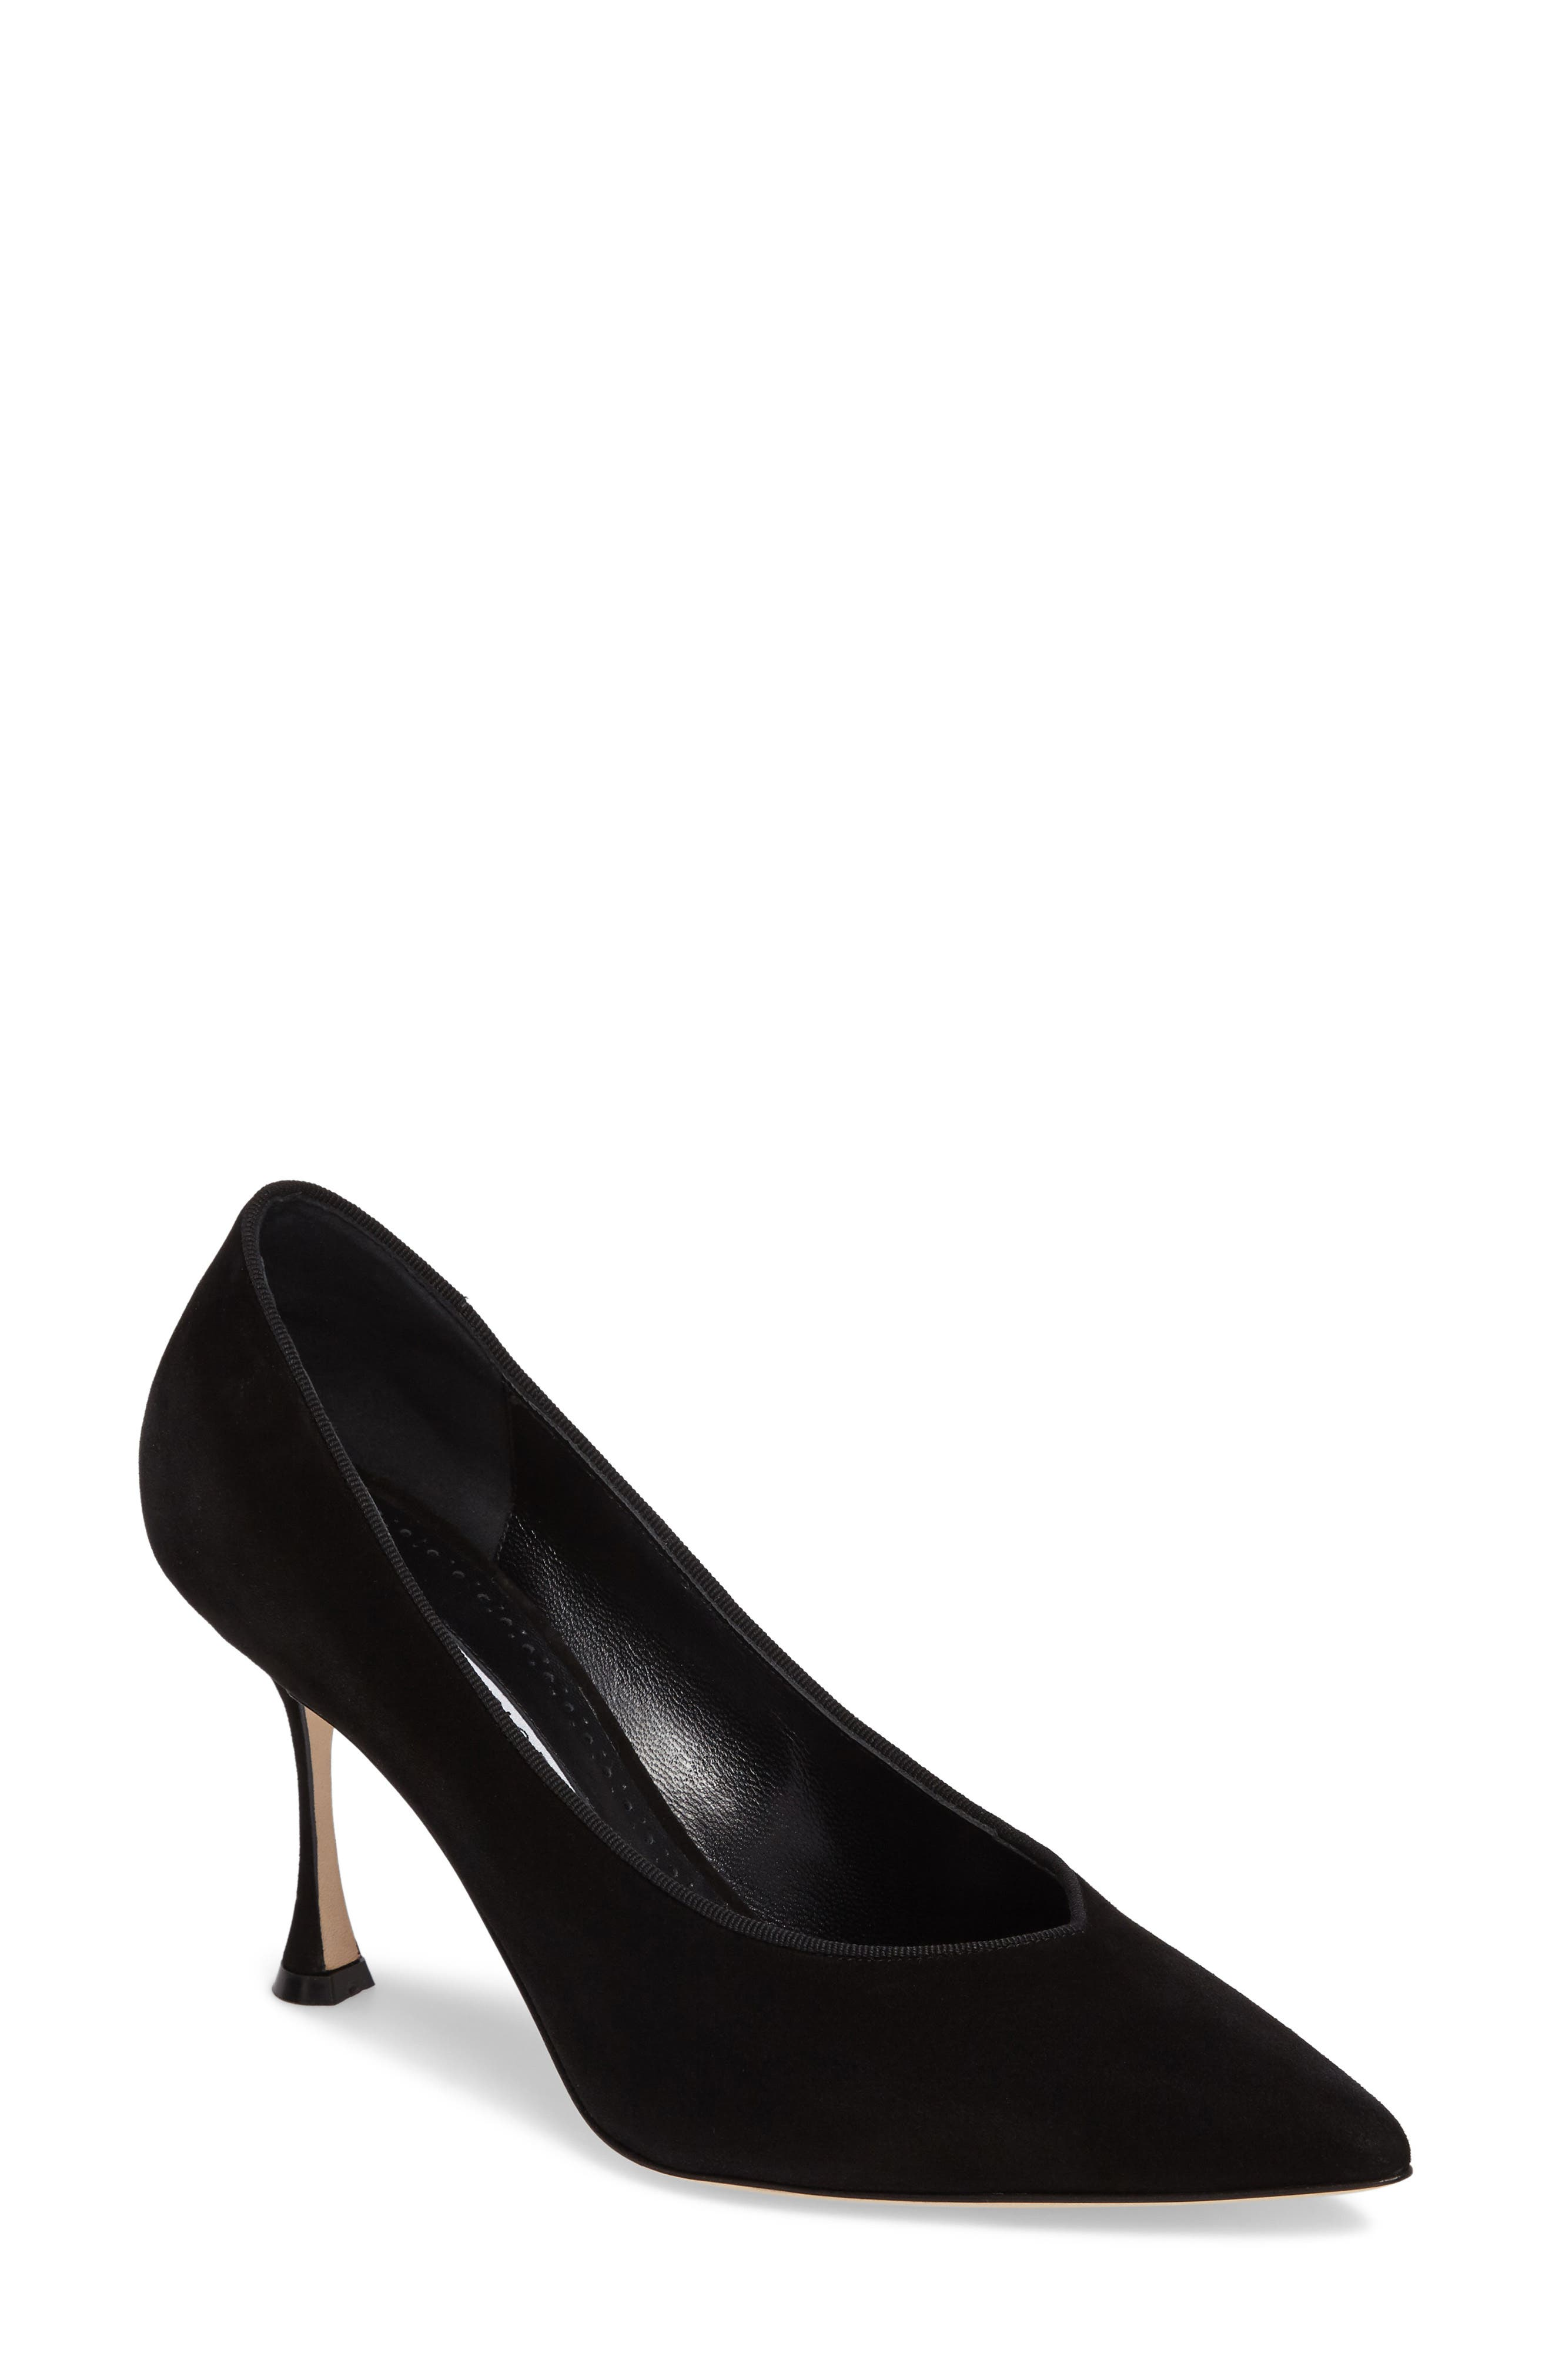 Urgenze Pointy Toe Pump,                         Main,                         color, Black Suede